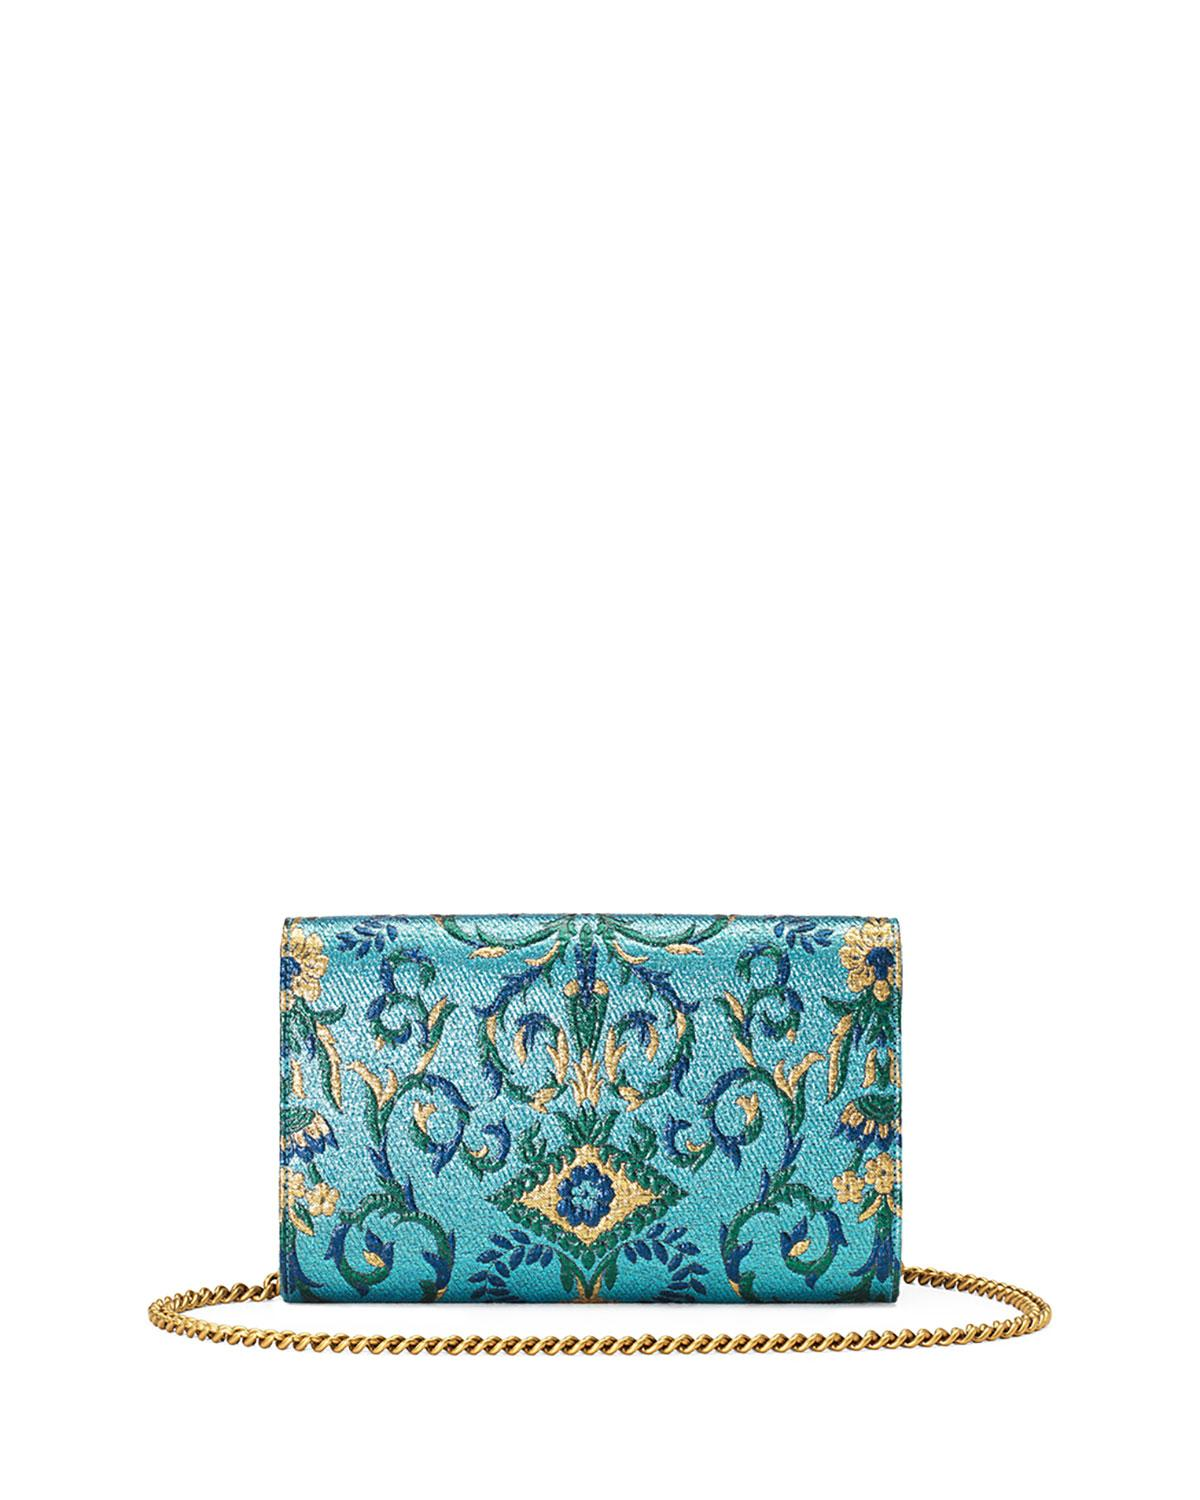 9f6527d7d9ed7d Gucci Broadway Brocade Clutch Bag in Blue - Lyst Gucci Yellow Bright  Diamante Leather ...